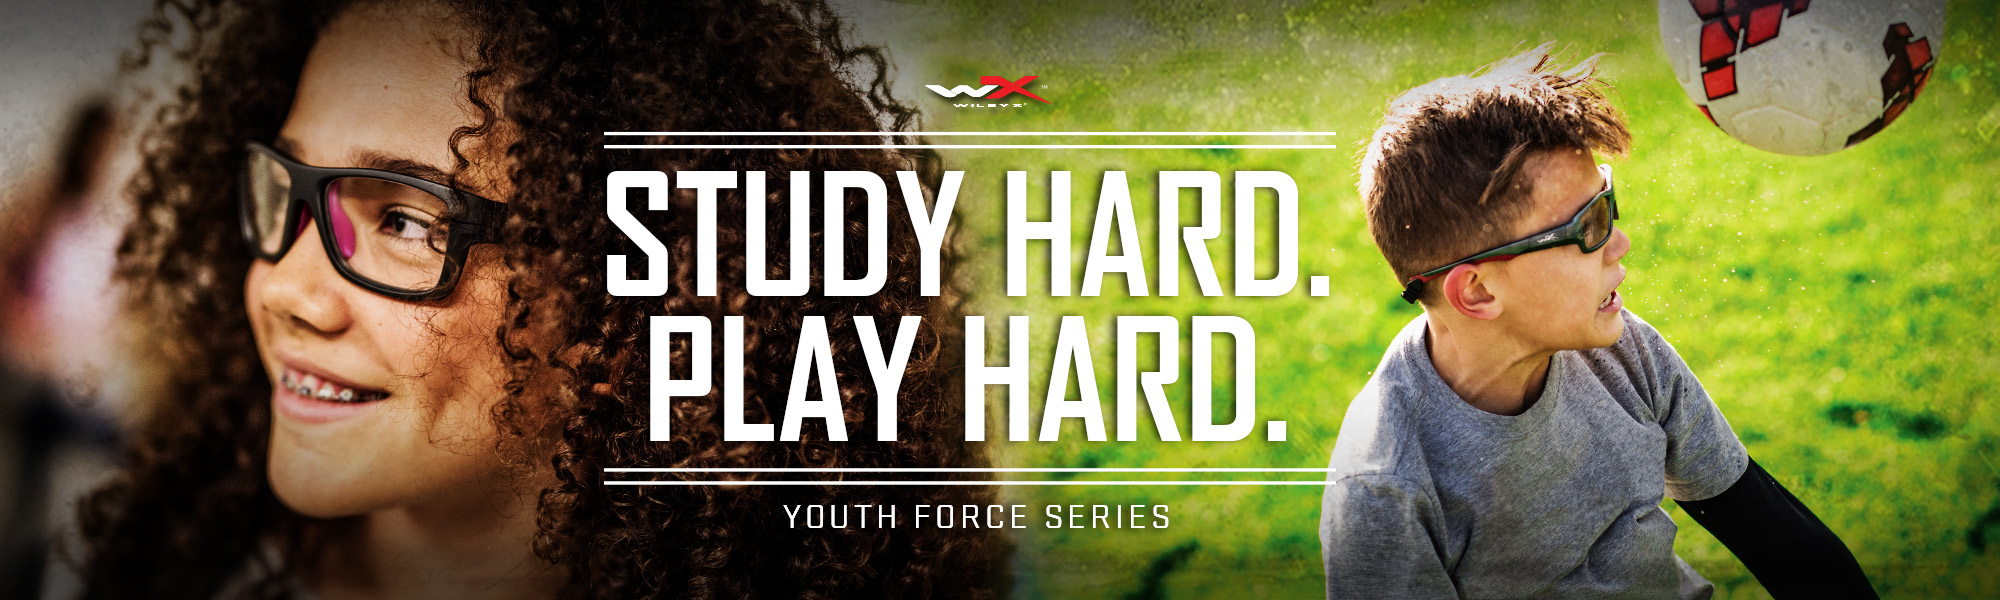 Youth Force Series